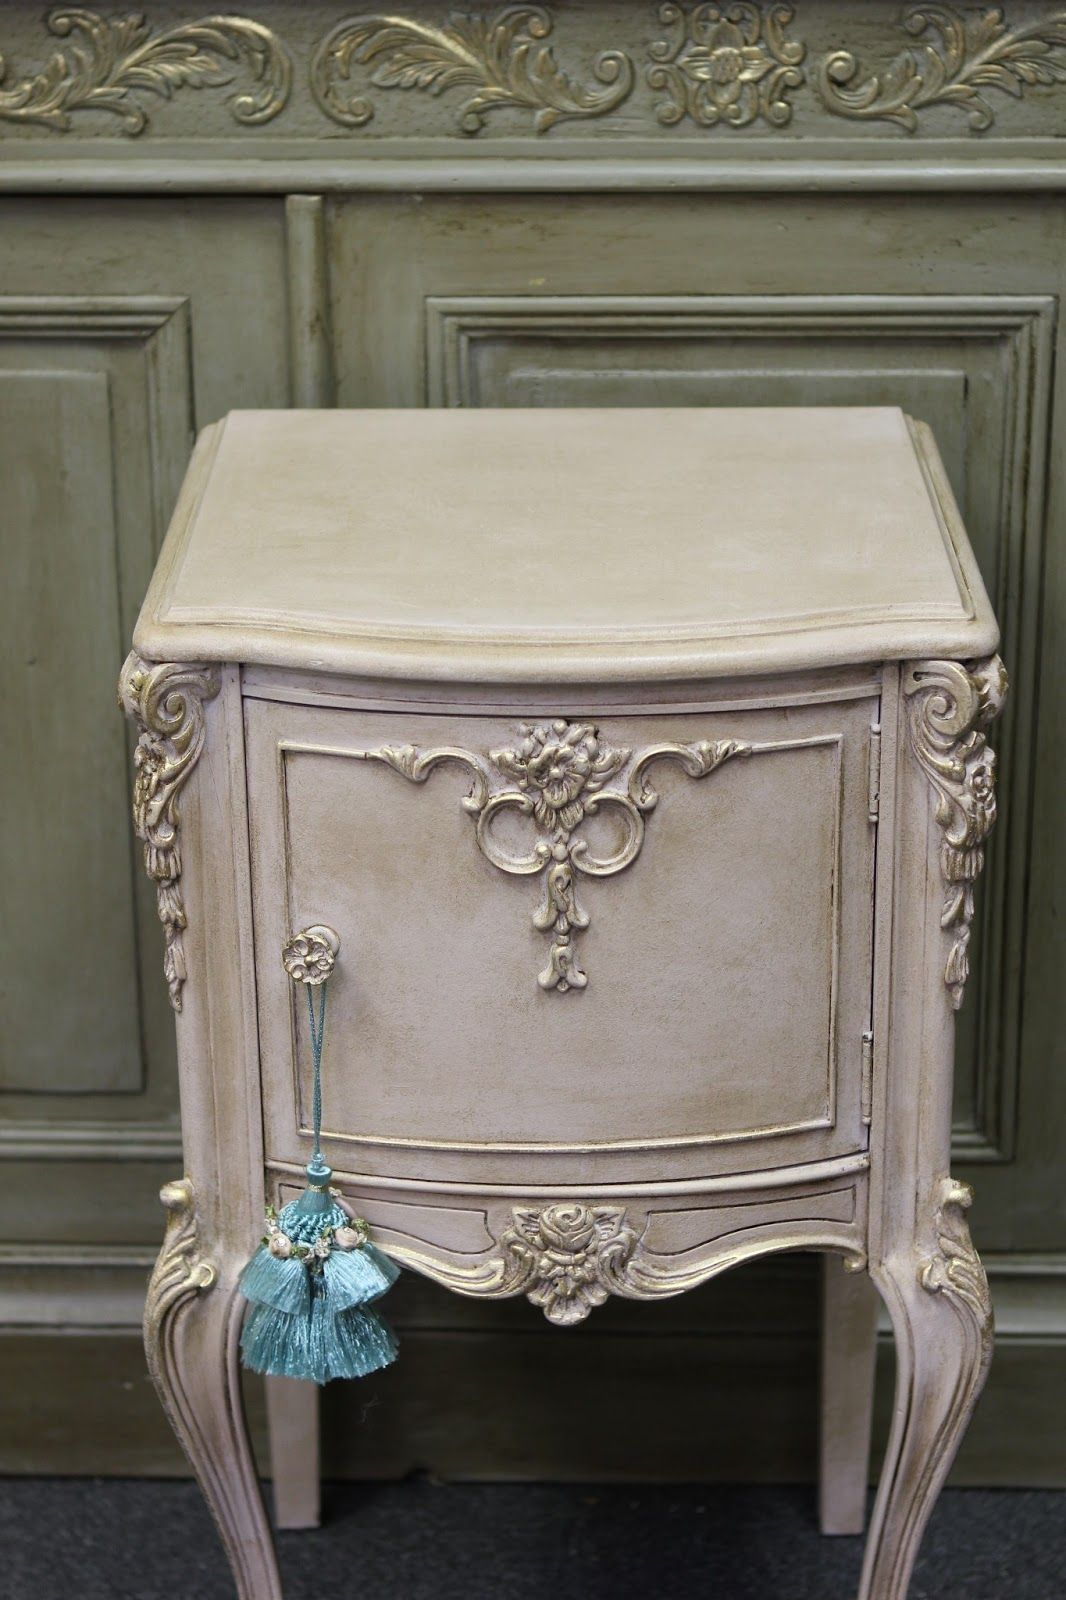 It S Crucial That Before You Apply The Dark Wax You Apply A Full Coat Of Clear Wax To Your Entire Furn Painted Furniture Refinishing Furniture Paint Furniture